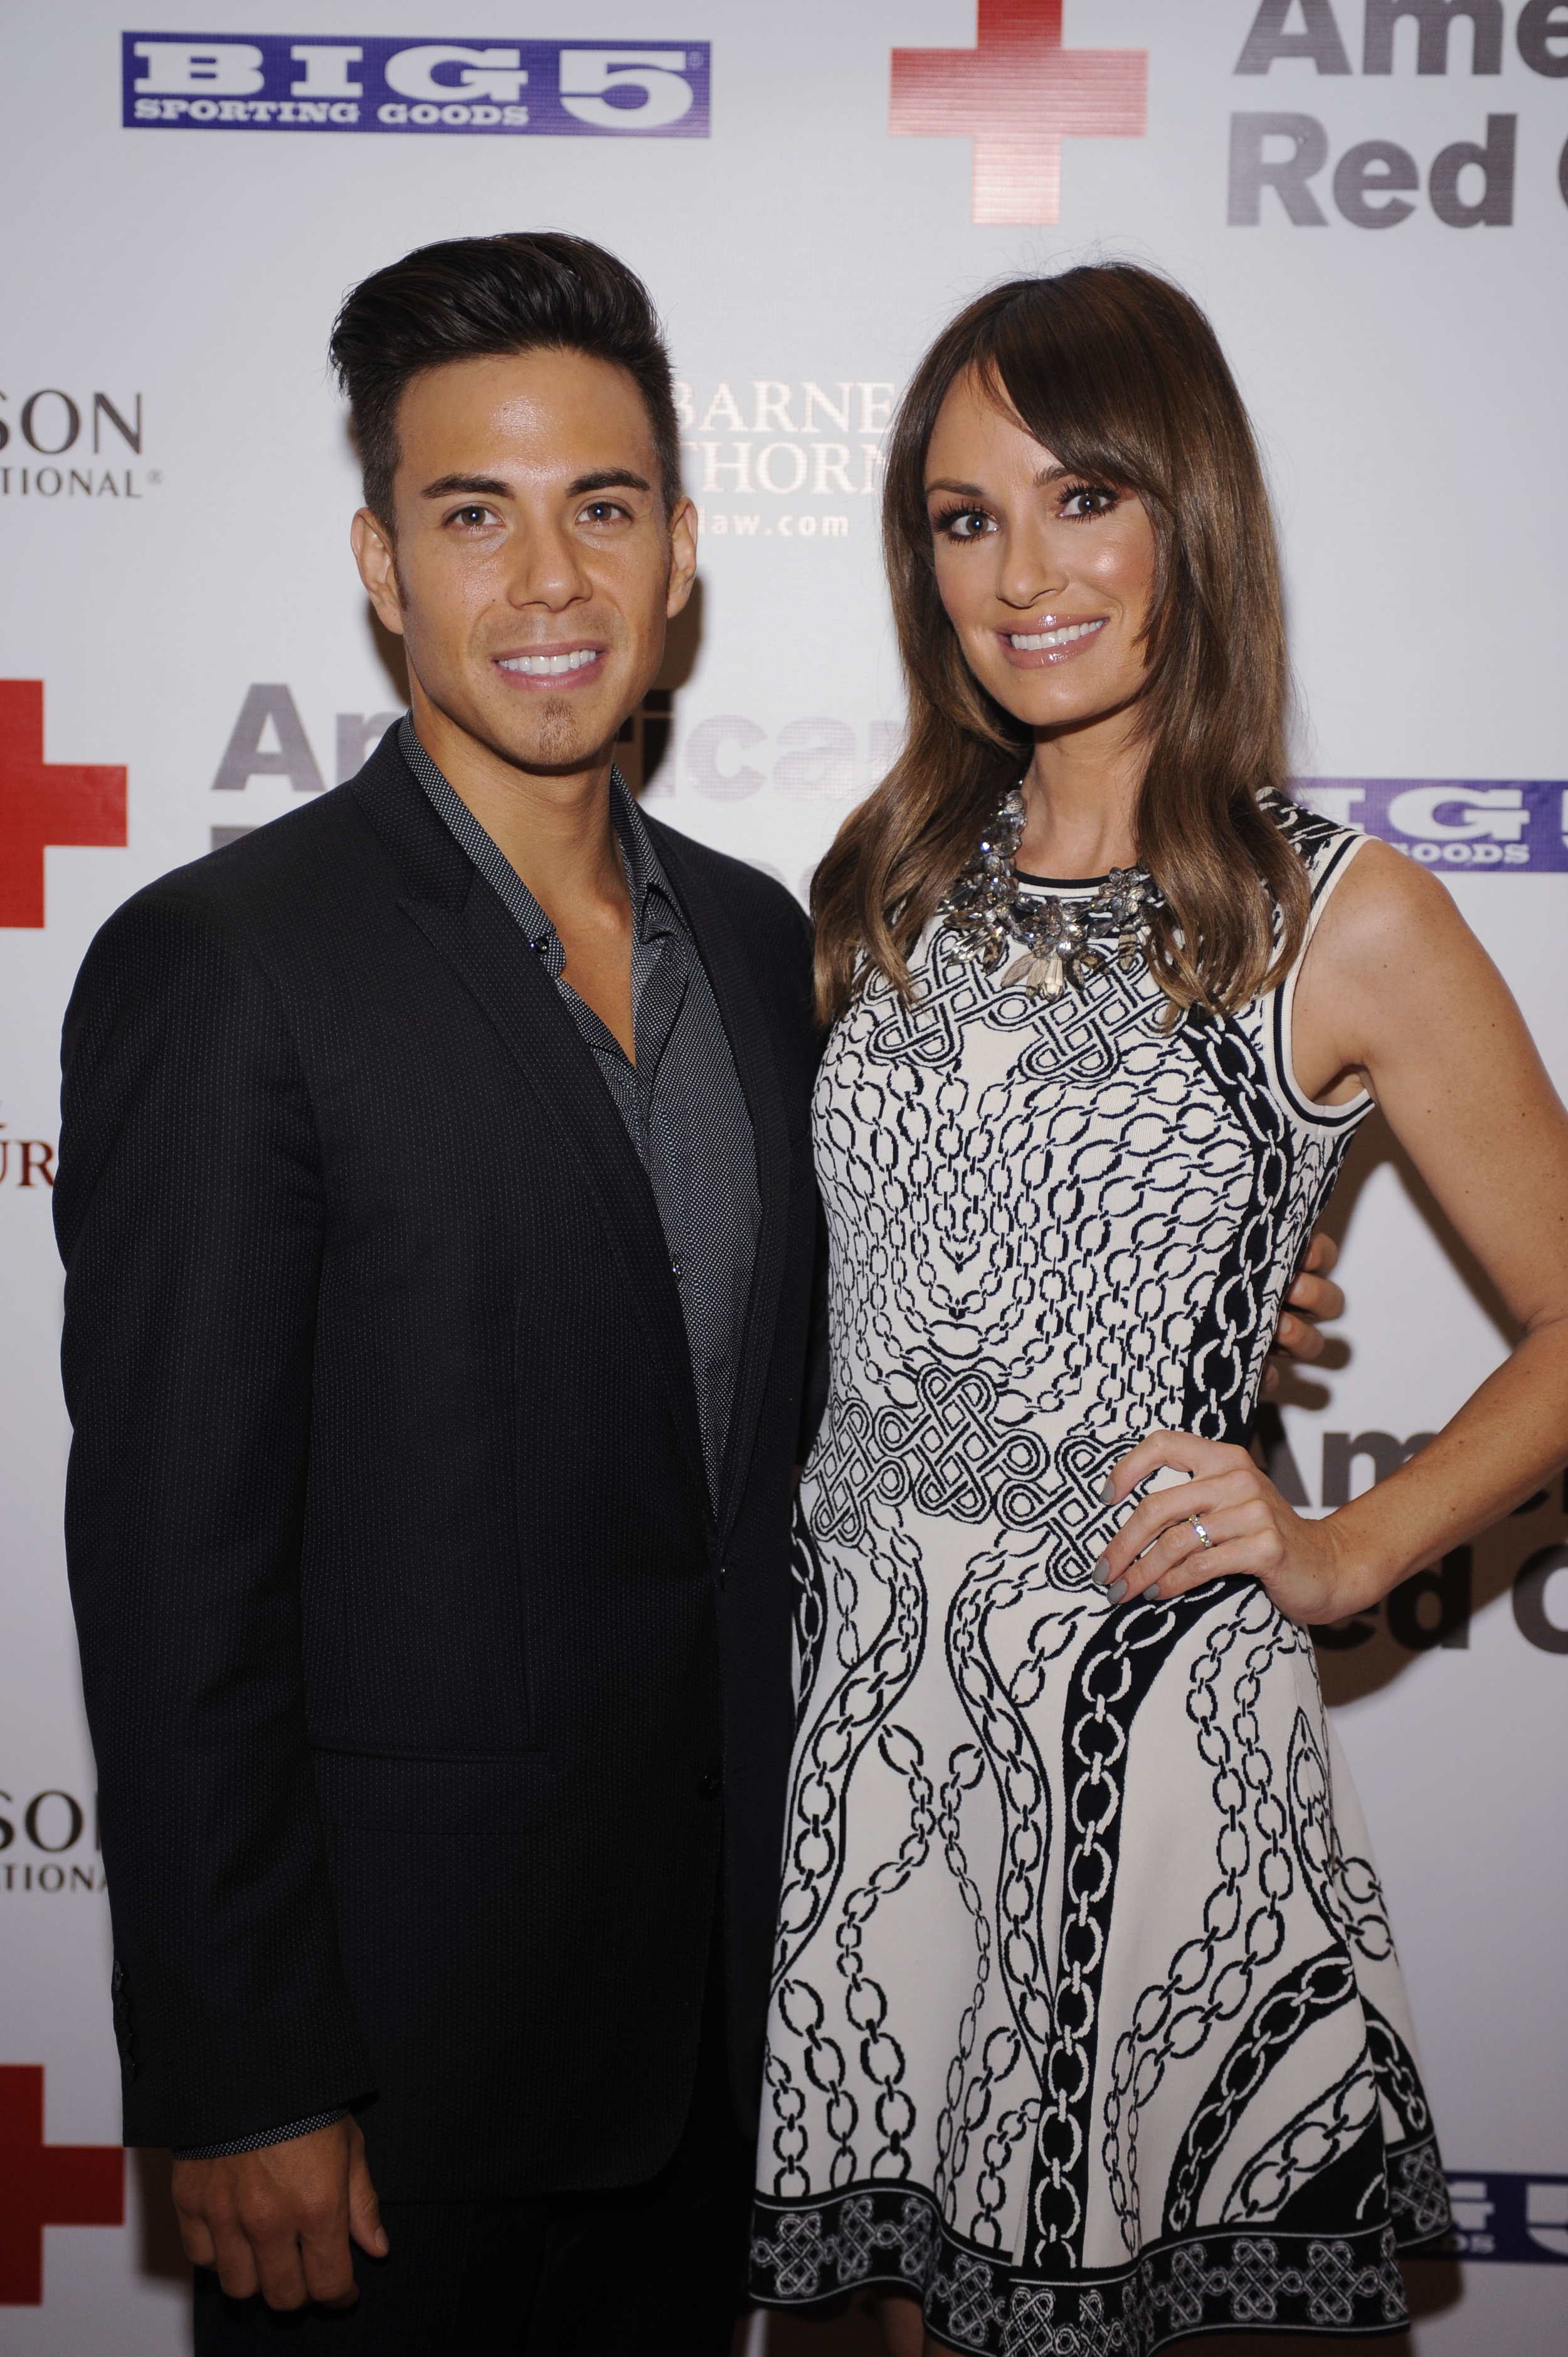 Apolo Ohno & Catt Sadler at the Red Cross LA Heroes Luncheon